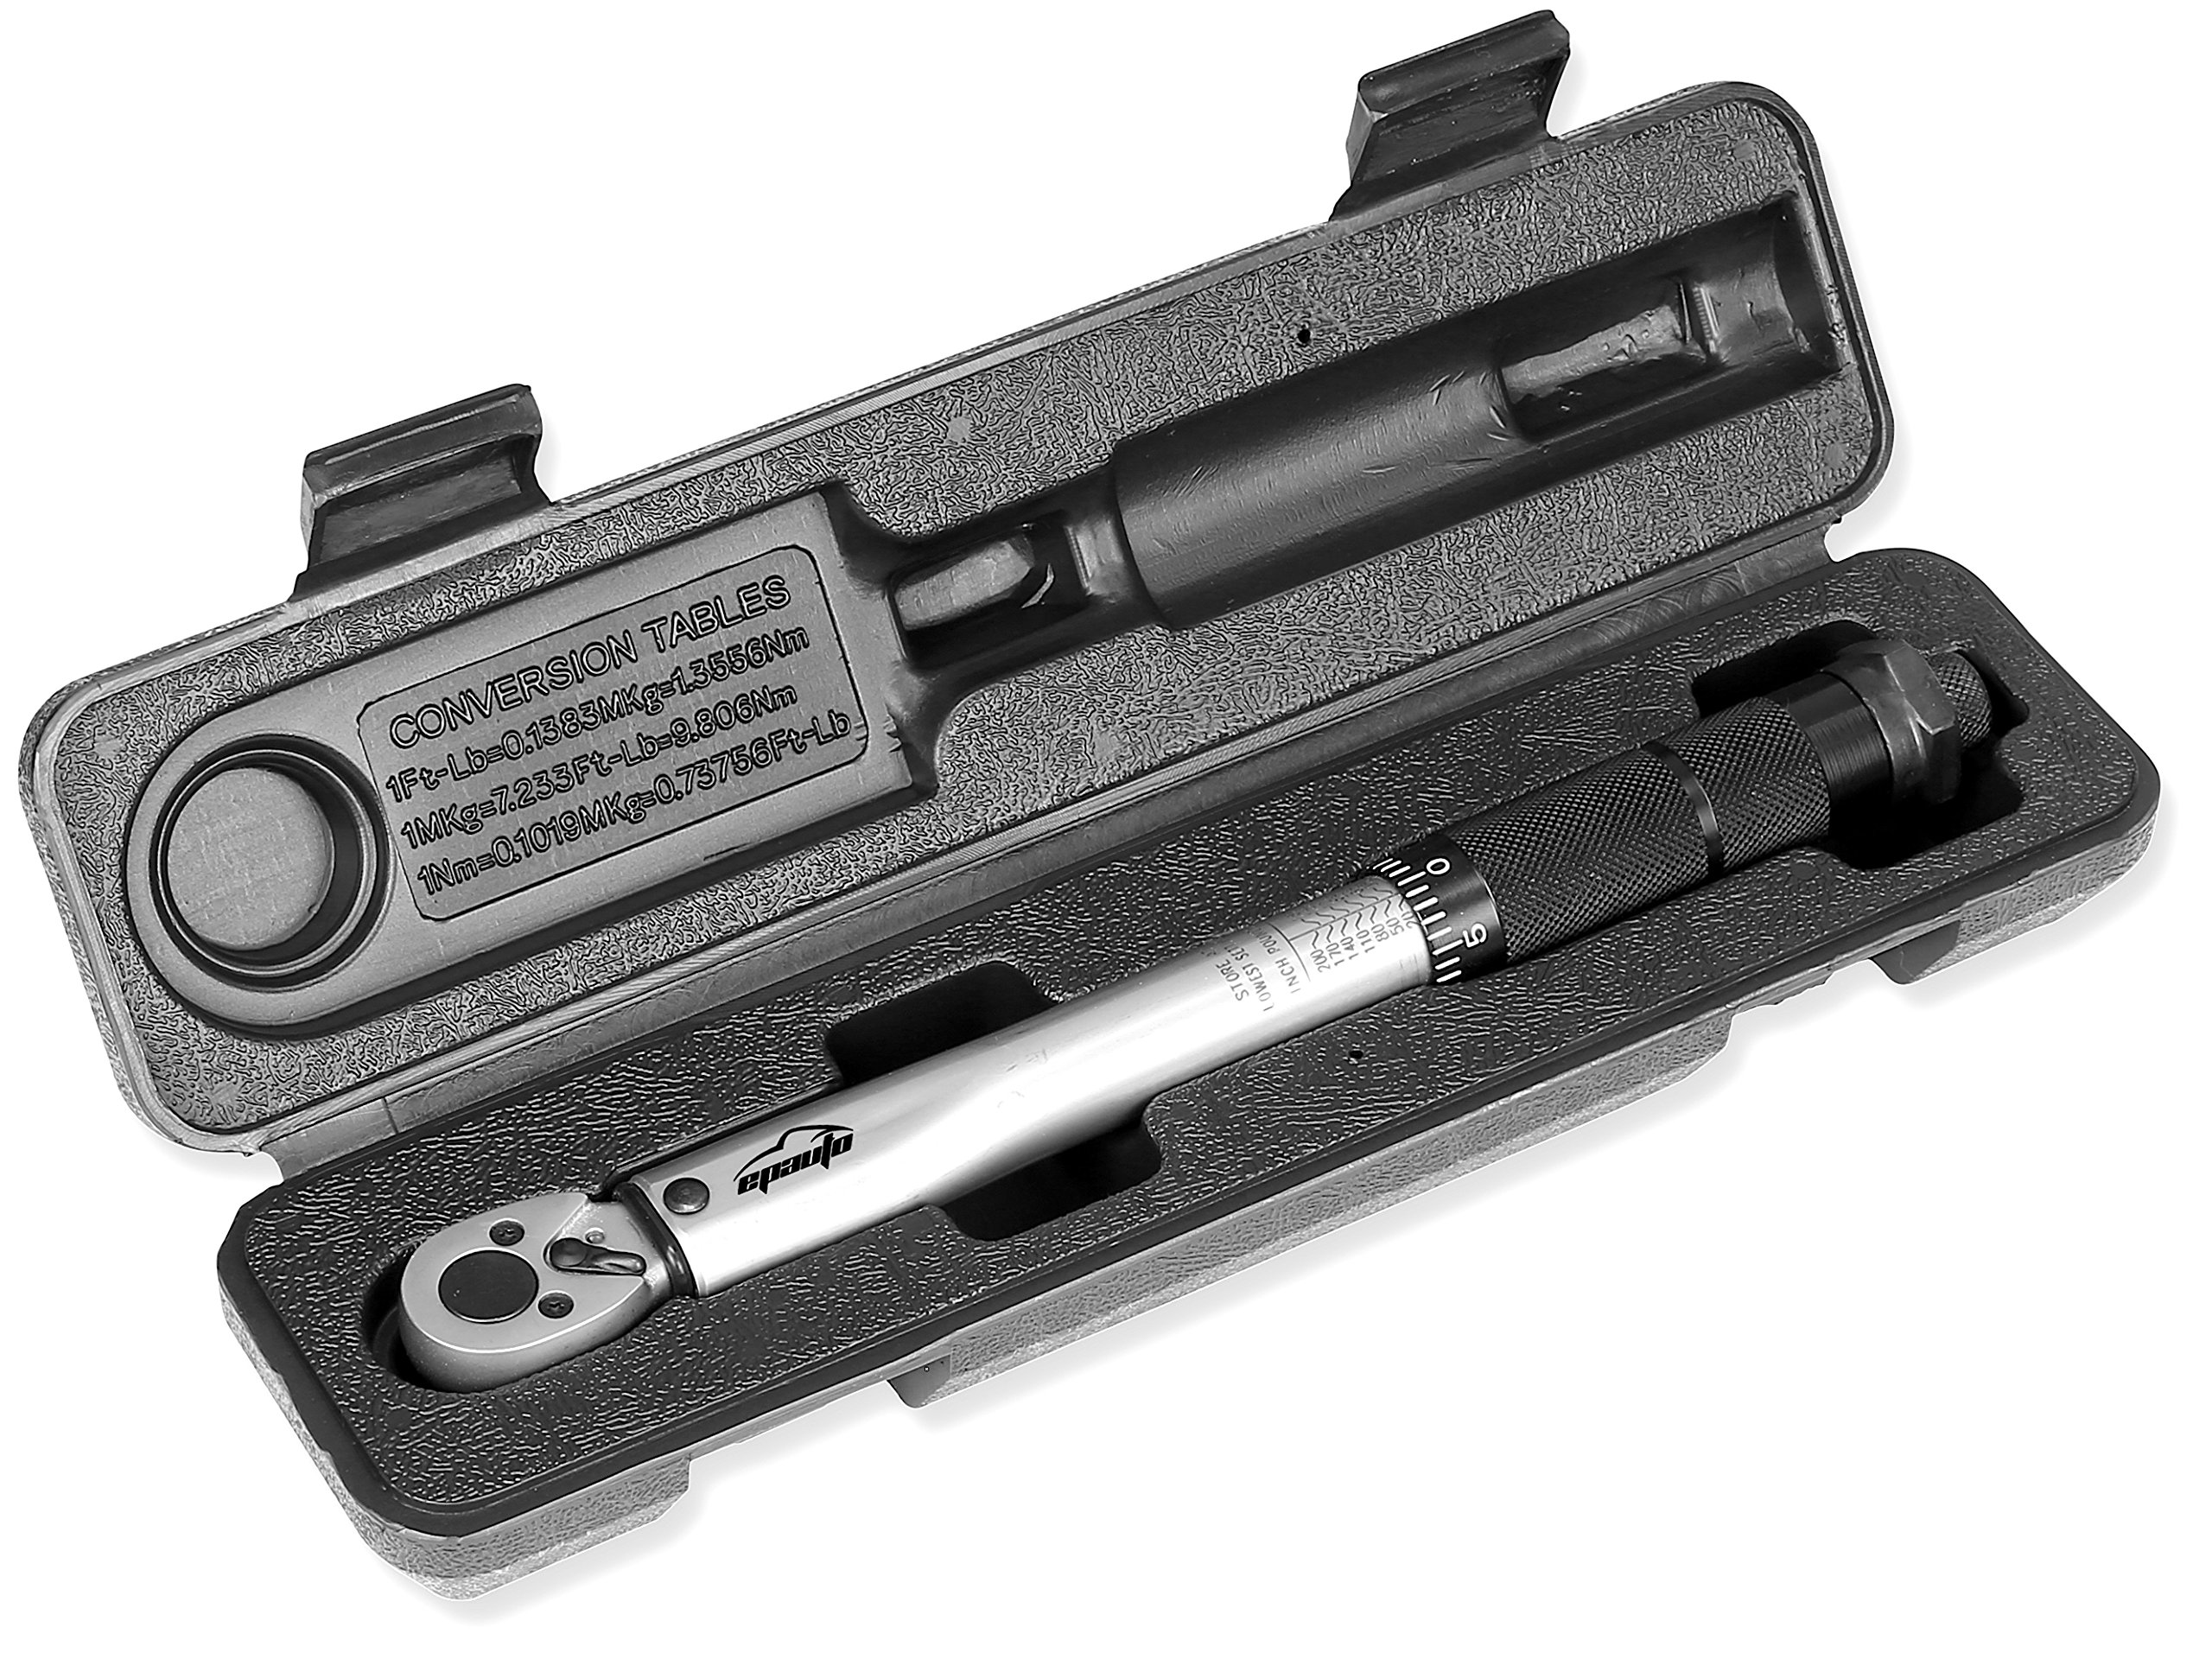 EPAuto 1/4-Inch Drive Click Torque Wrench (20-200 in.-lb. / 2.26~22.6 Nm)